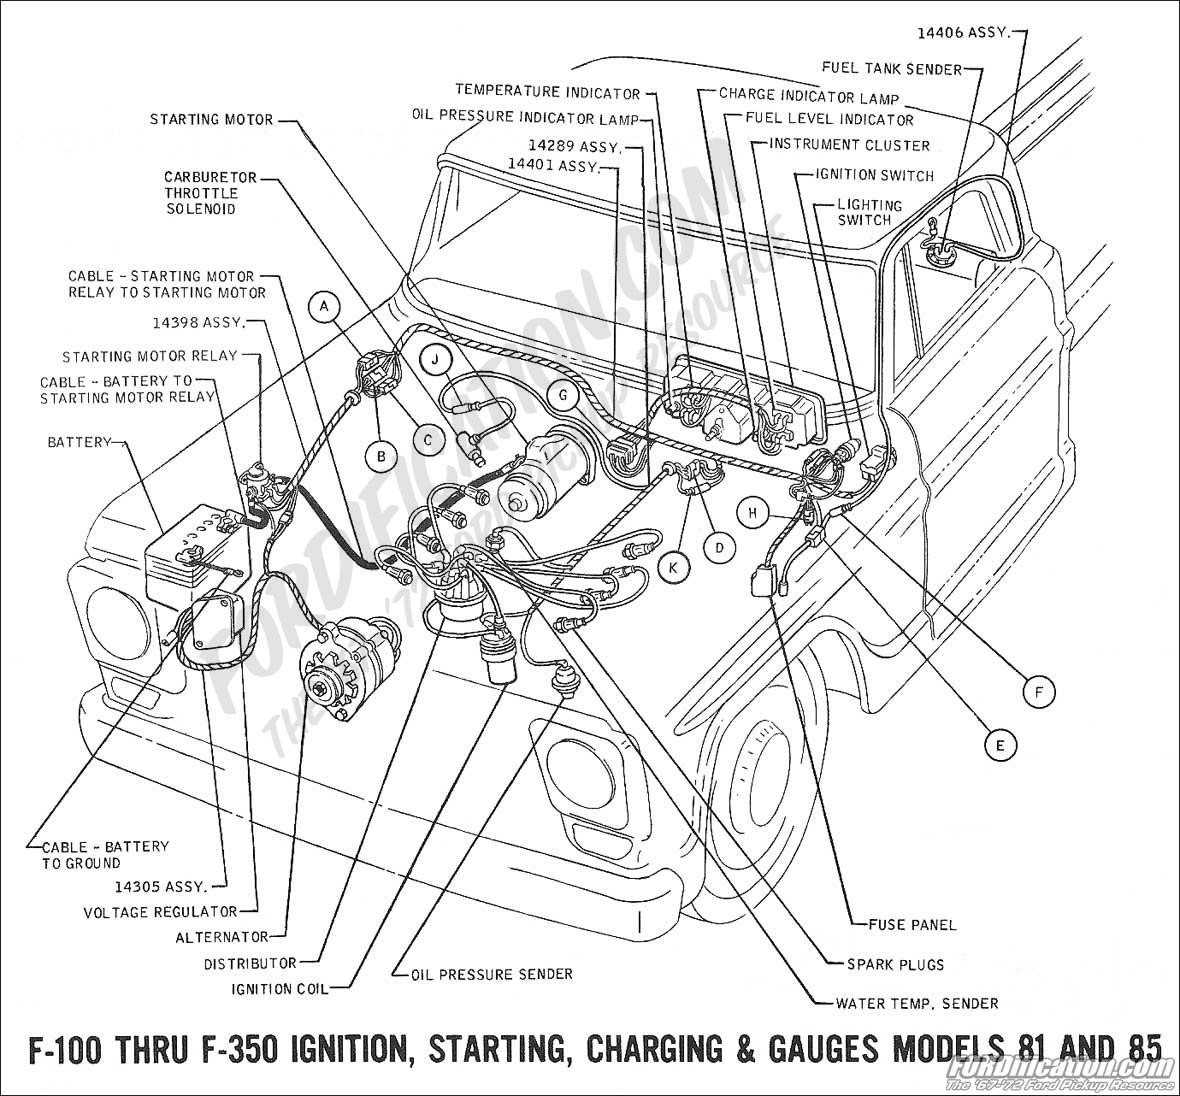 wiring 1969charging ford truck technical drawings and schematics section h wiring 1955 ford f100 wiring diagram at crackthecode.co